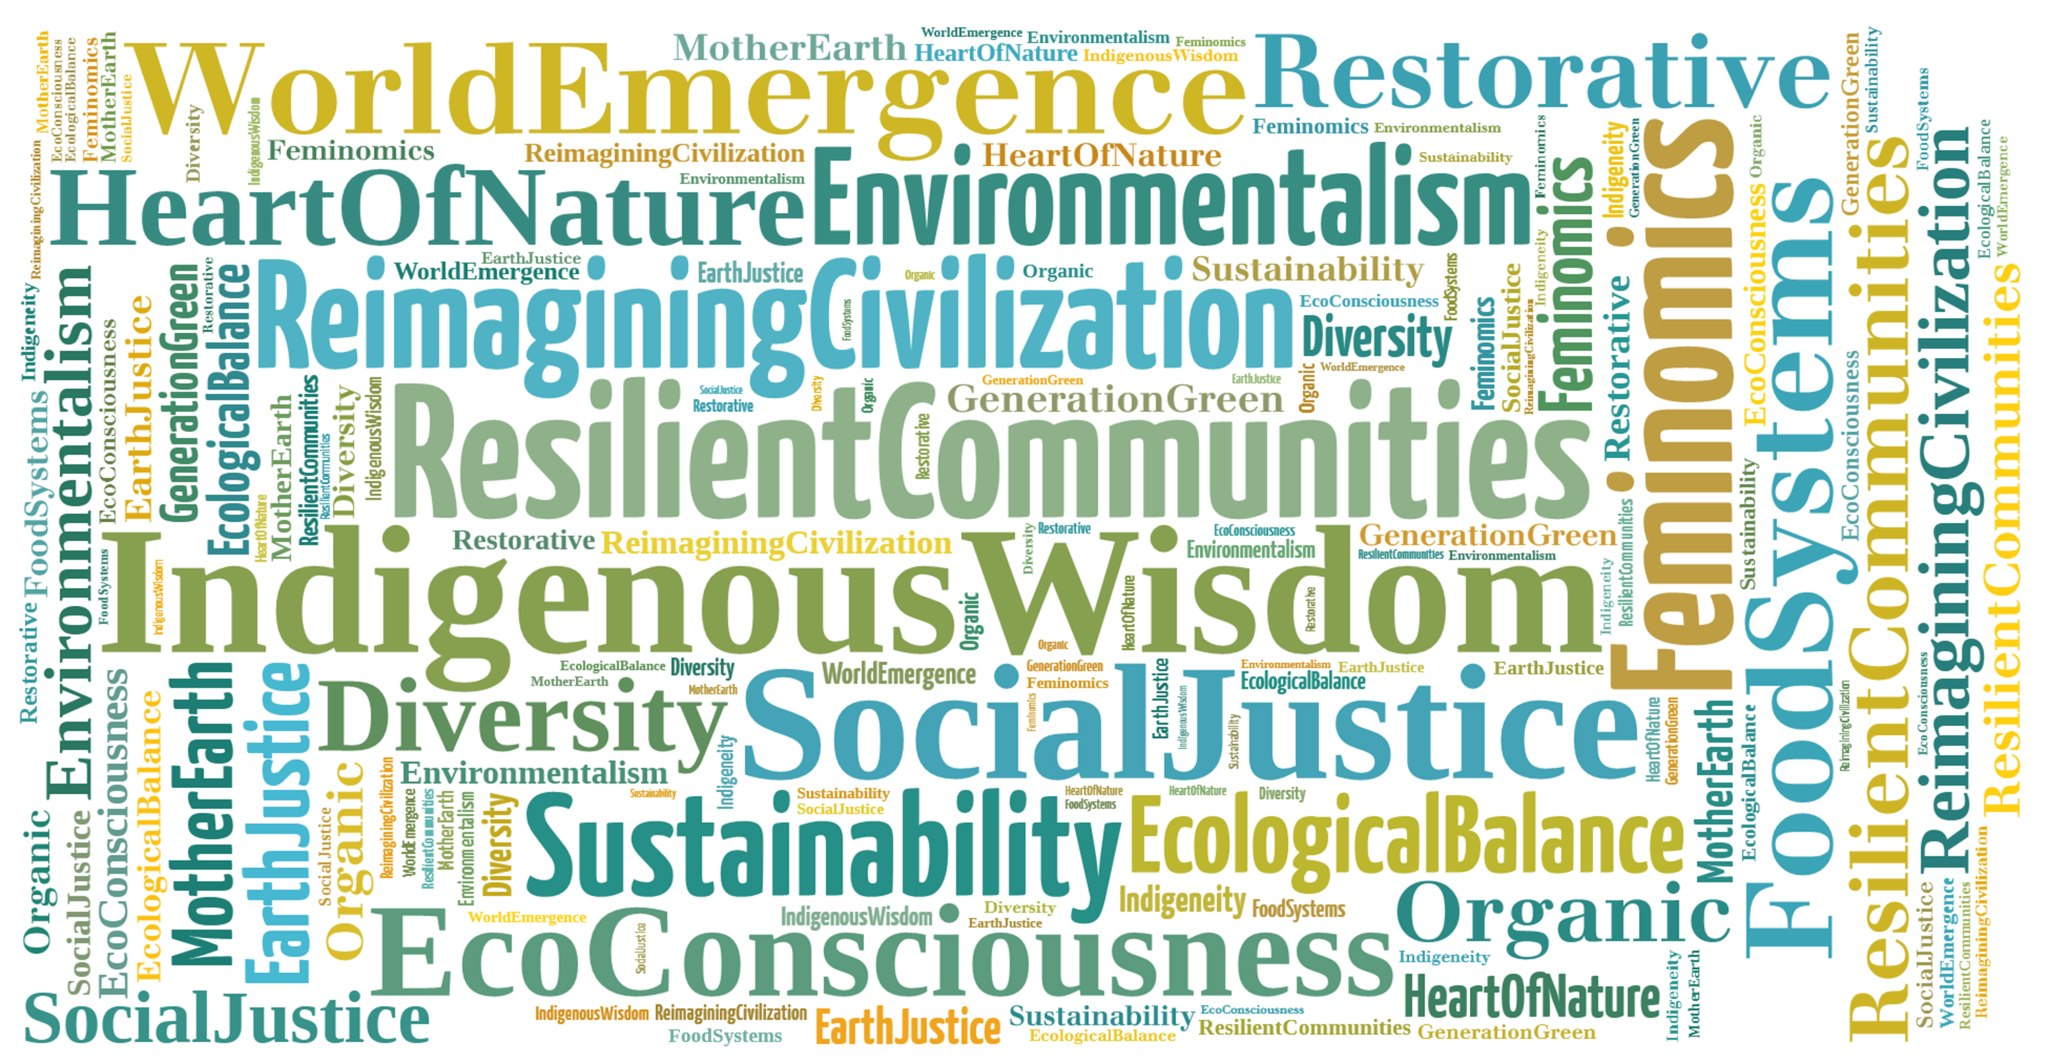 Bioneers-wordle